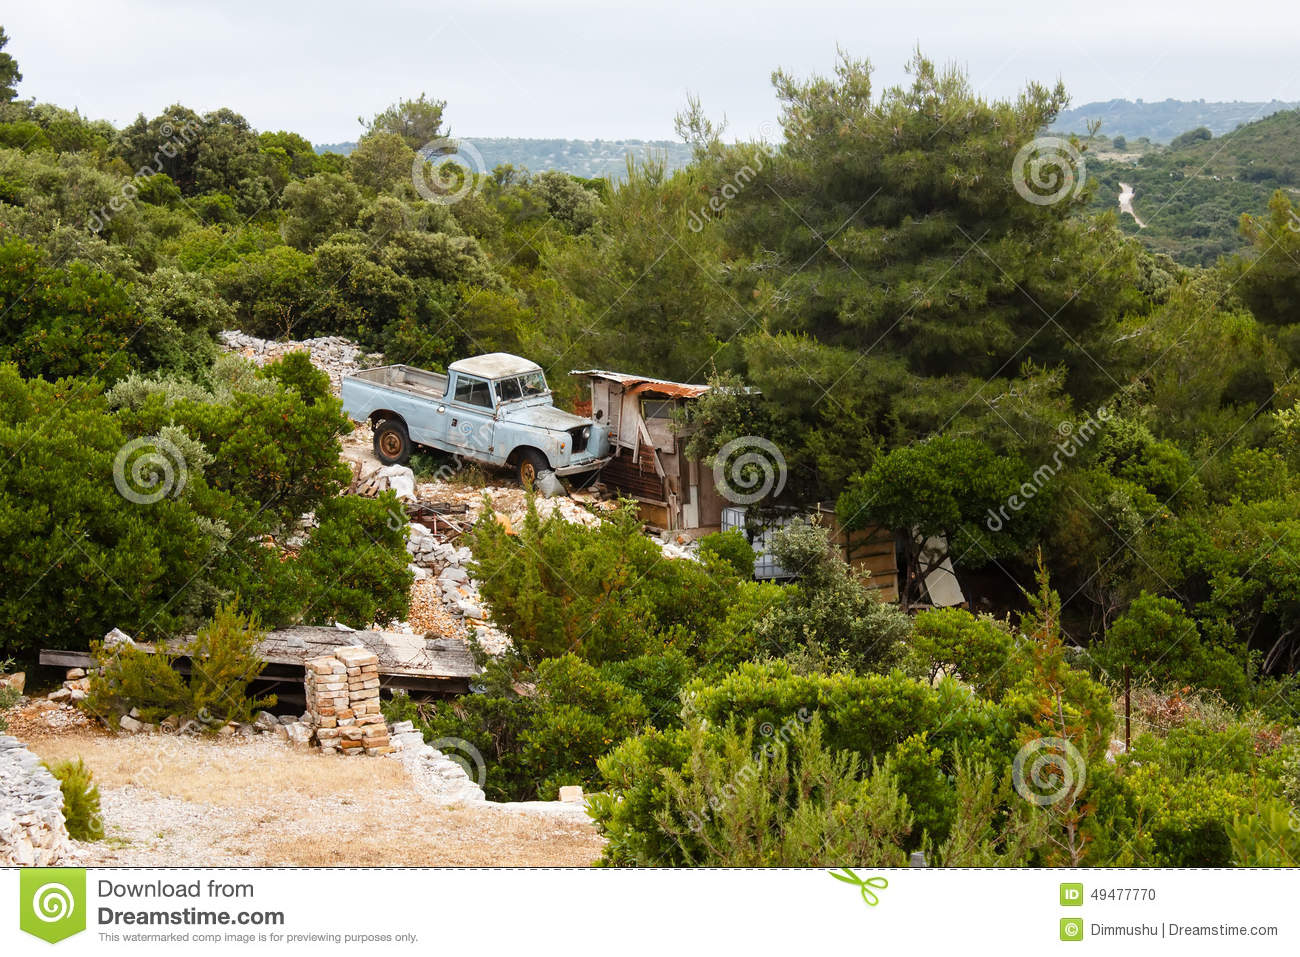 Range Rover Pickup >> Old Blue Land Rover Pickup Standing Near Small House In The Forest In Mountains On The Island In ...